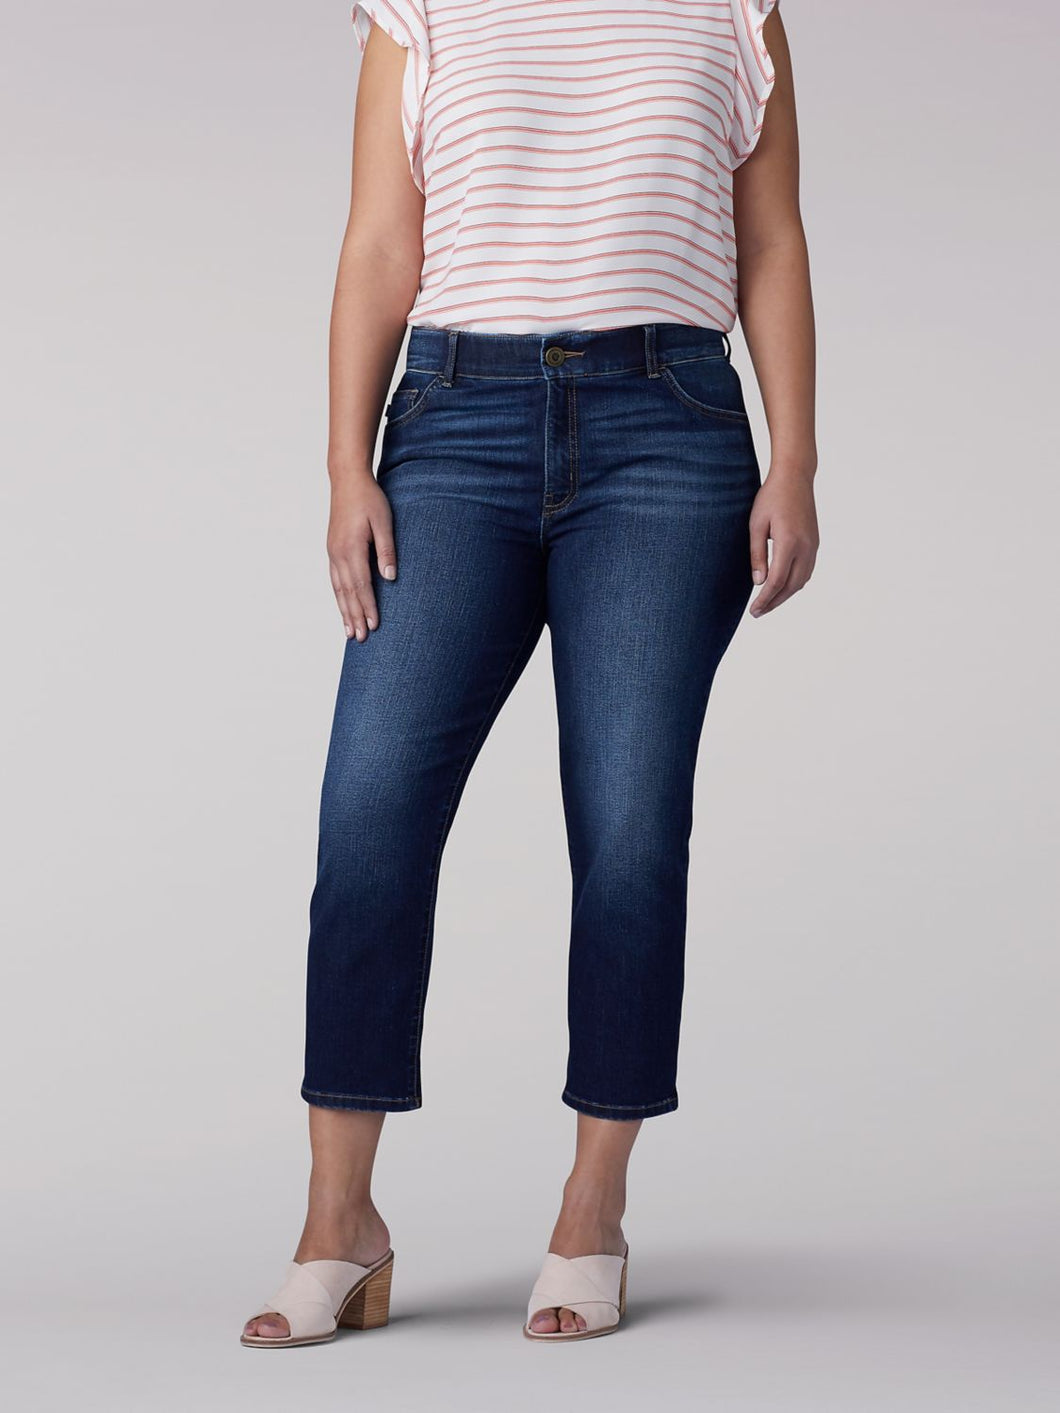 Plus Size Flex Motion Regular Fit Capri Jean in Bewitched from Front View